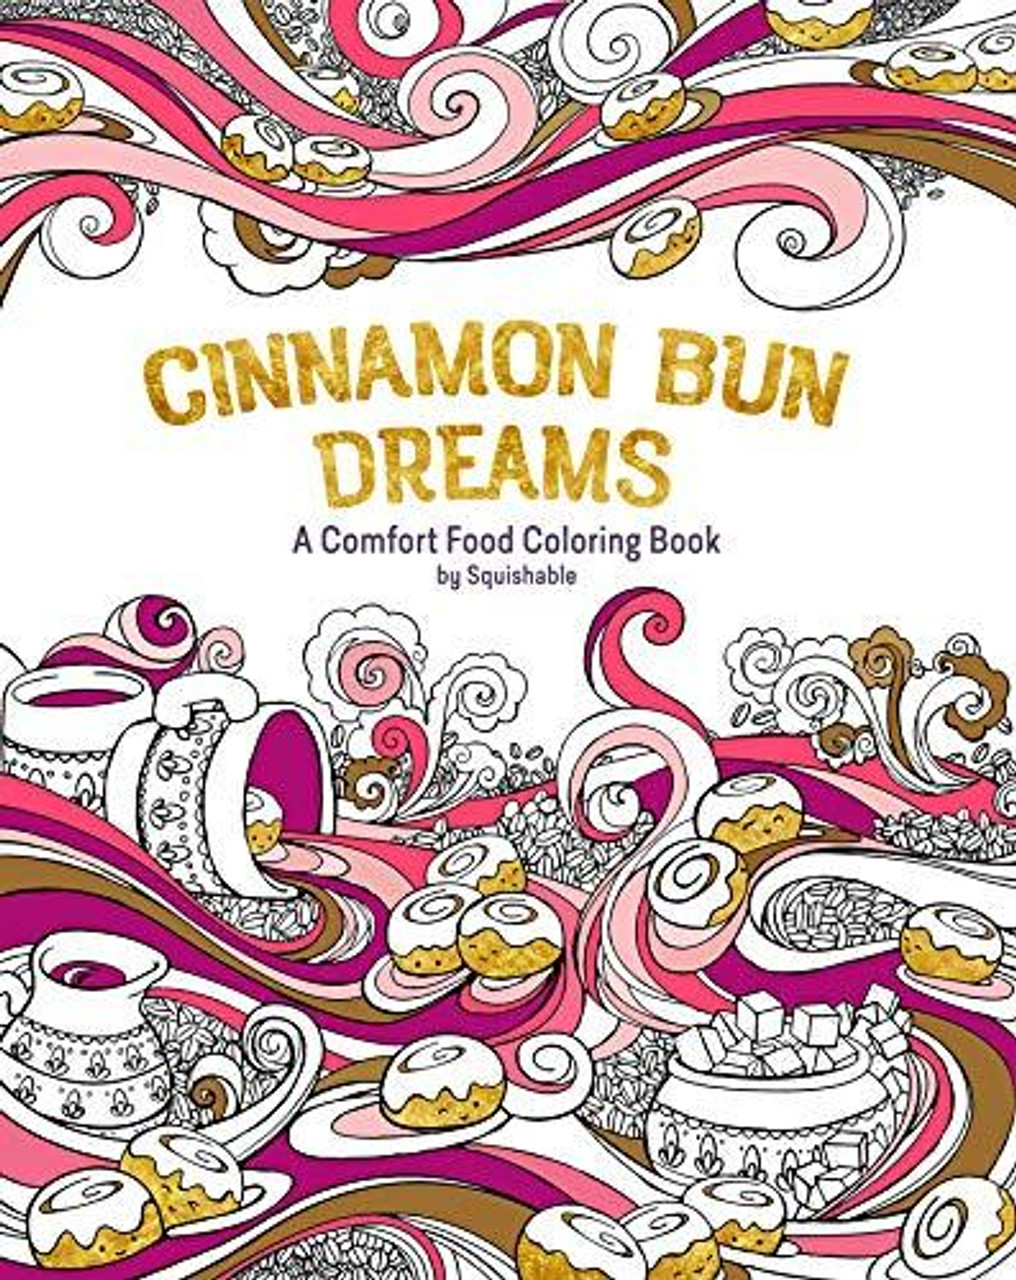 - Buy Cinnamon Bun Dreams (A Comfort Food Color.. In Bulk